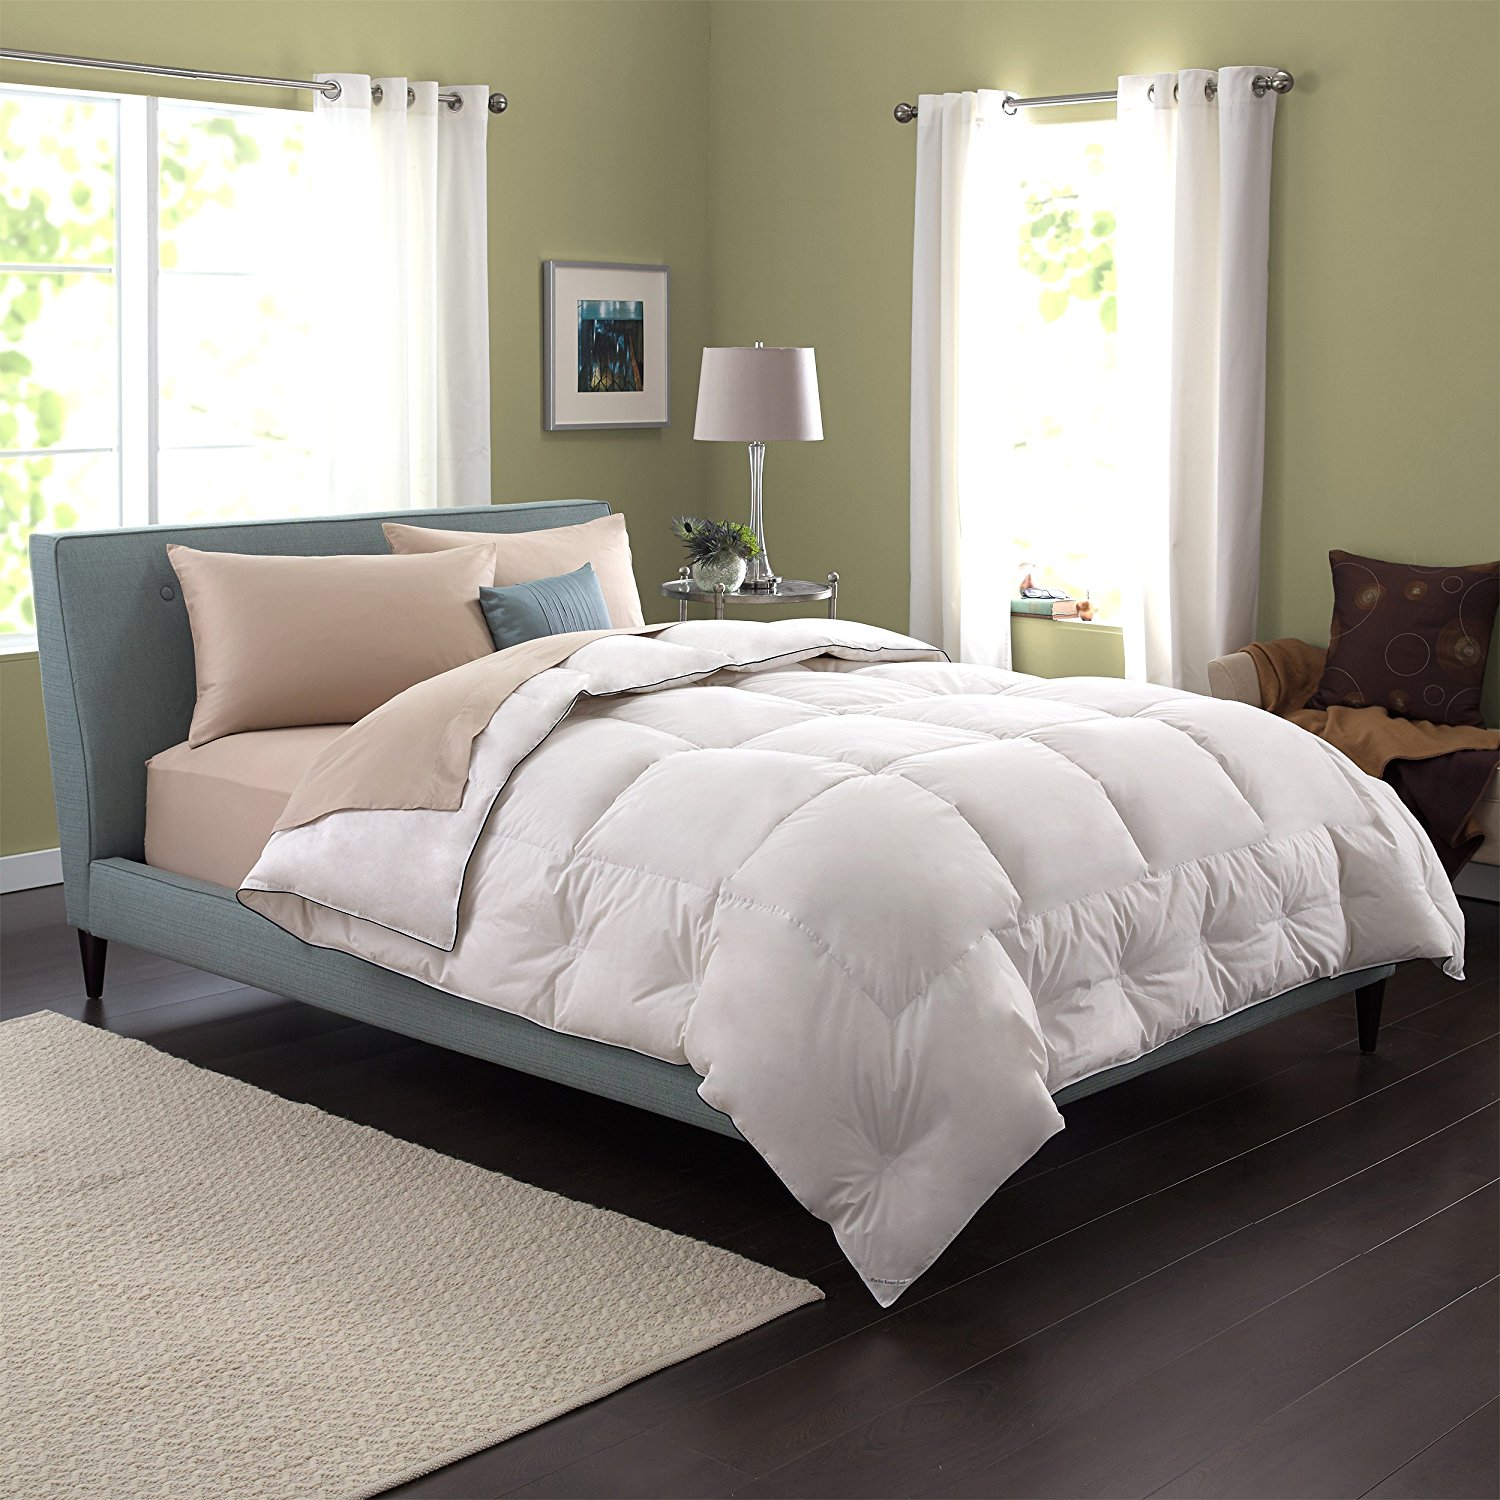 Down Comforter Macy's | Pacific Coast European Down Comforter | Pacific Coast Comforter